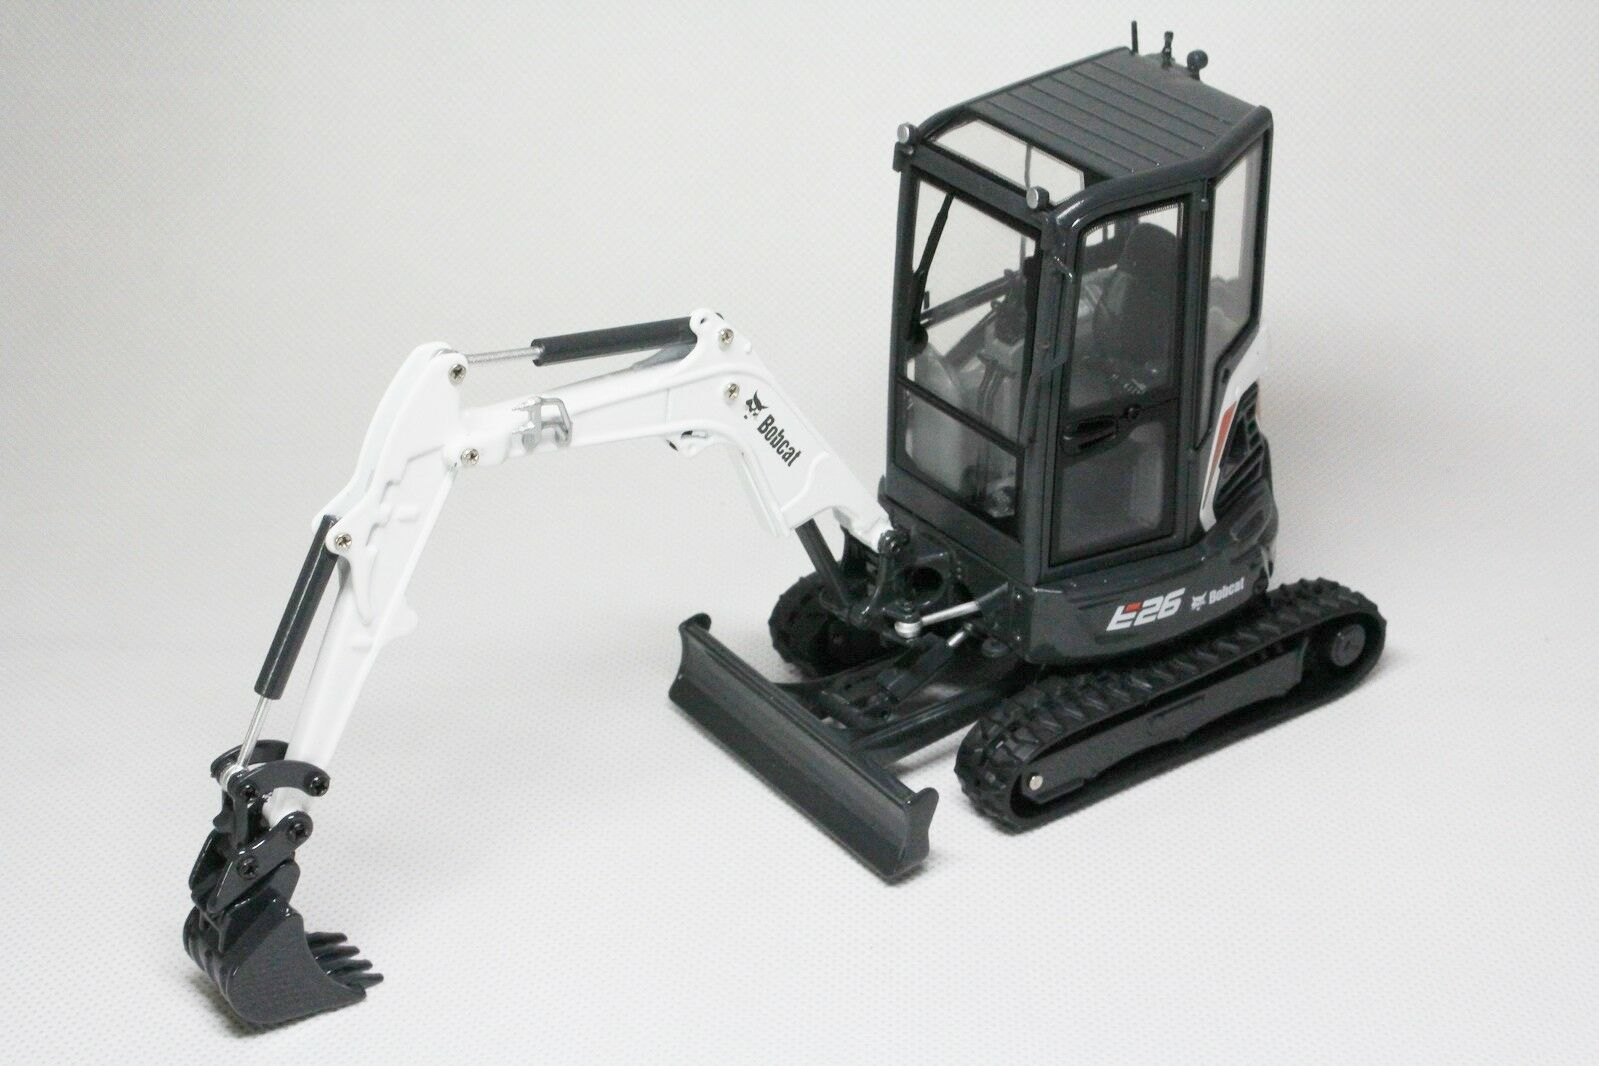 1 25 BOBCAT EQUIPMENT Model E26 Compact Excavator DIECAST Universal Hobbies 8132